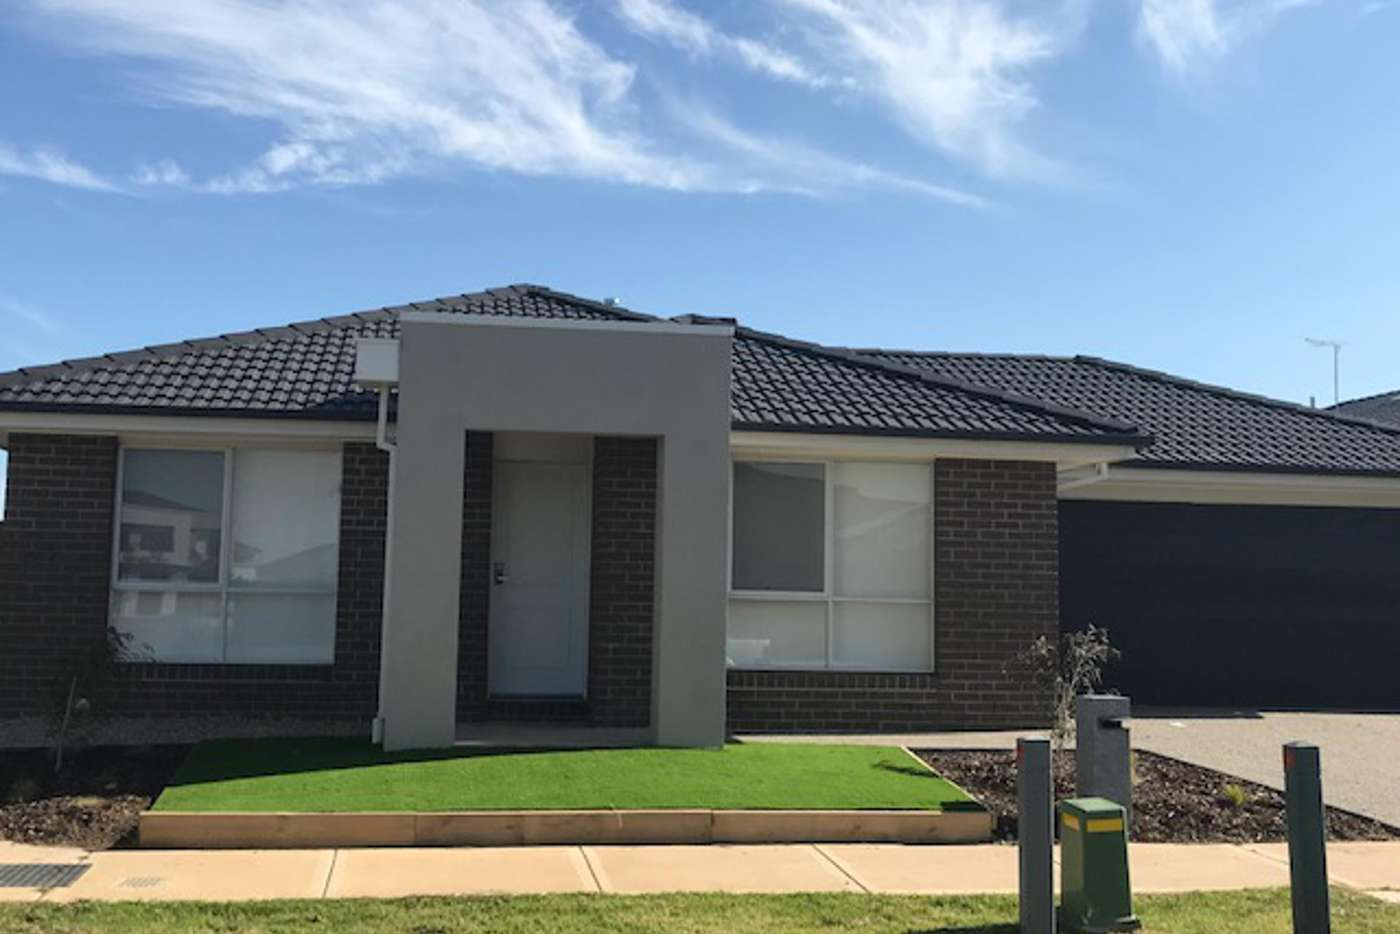 Main view of Homely house listing, 2 Weighbridge Avenue, Wyndham Vale VIC 3024